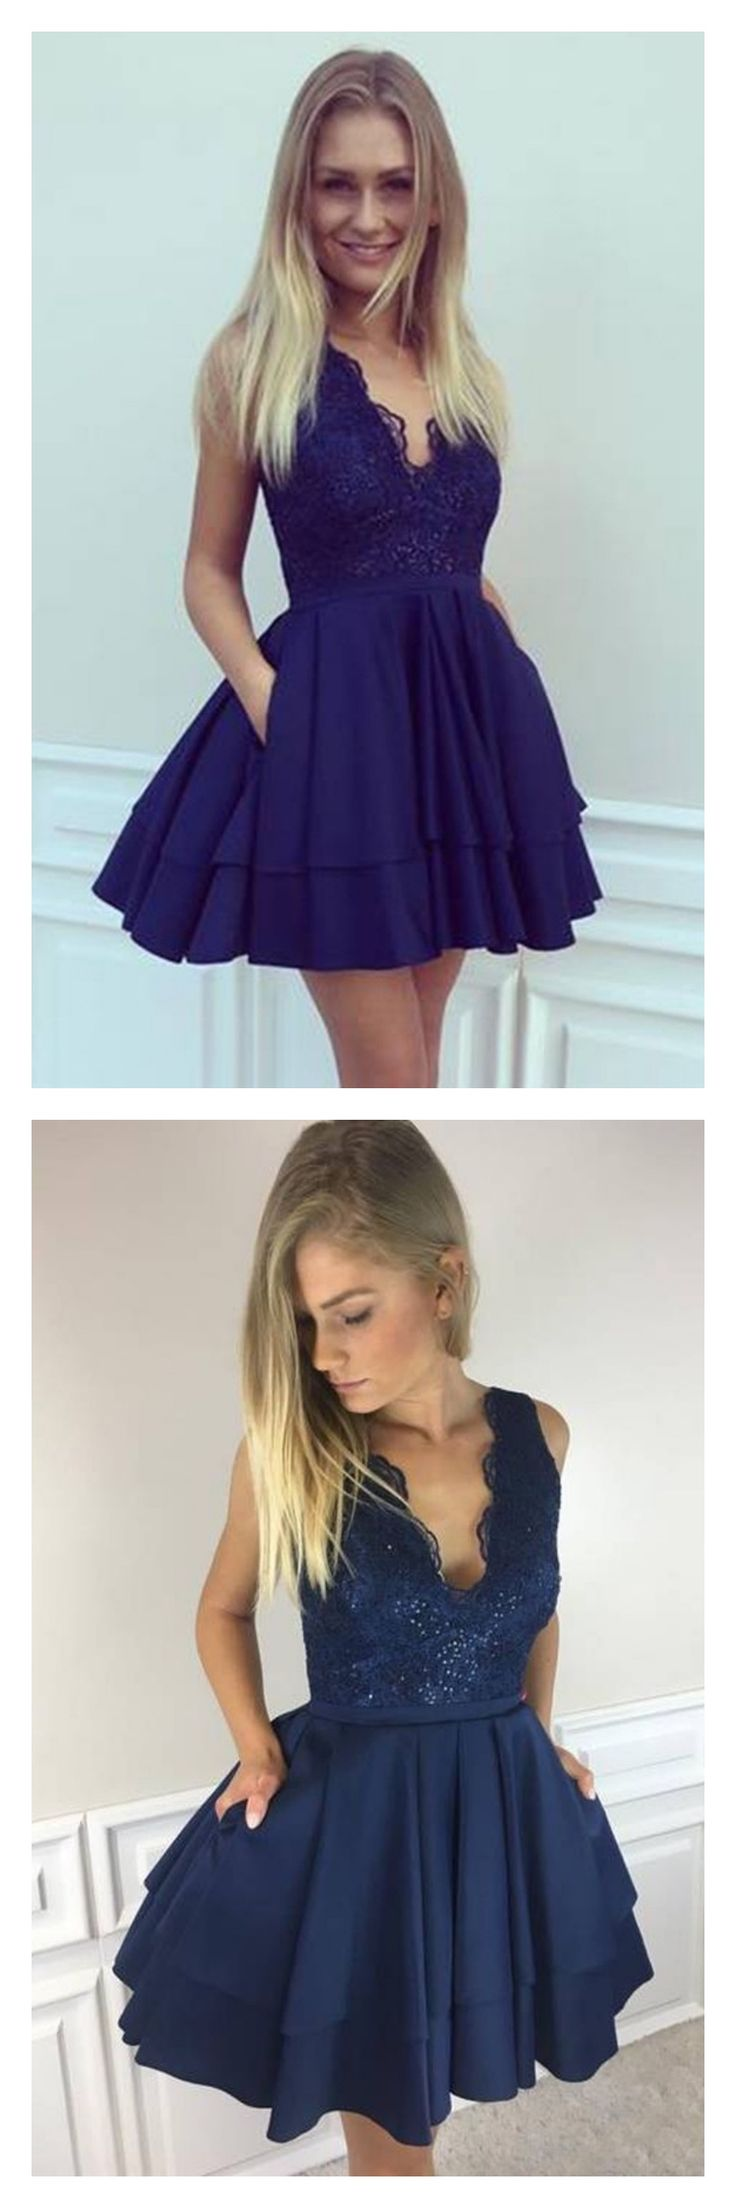 navy blue  homecoming dresses, 2k17 homecoming dresses, lace homecoming dresses, homecoming dresses short, satin homecoming dresses,cheap homecoming dresses, cocktail dresses, graduation dresses, party dresses,prom dresses #SIMIBridal #homecomingdresses